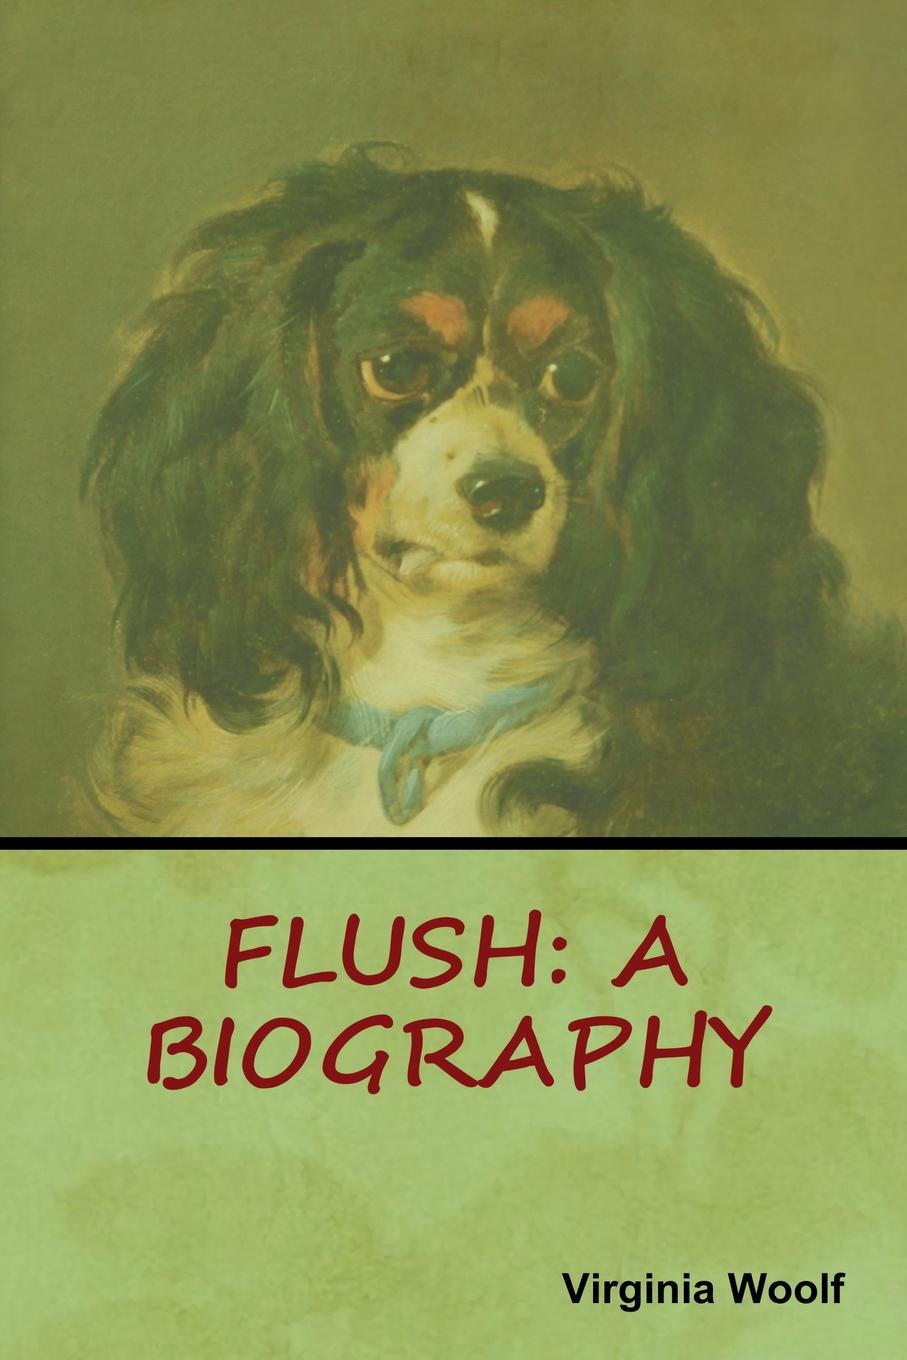 Virginia Woolf Flush. A Biography